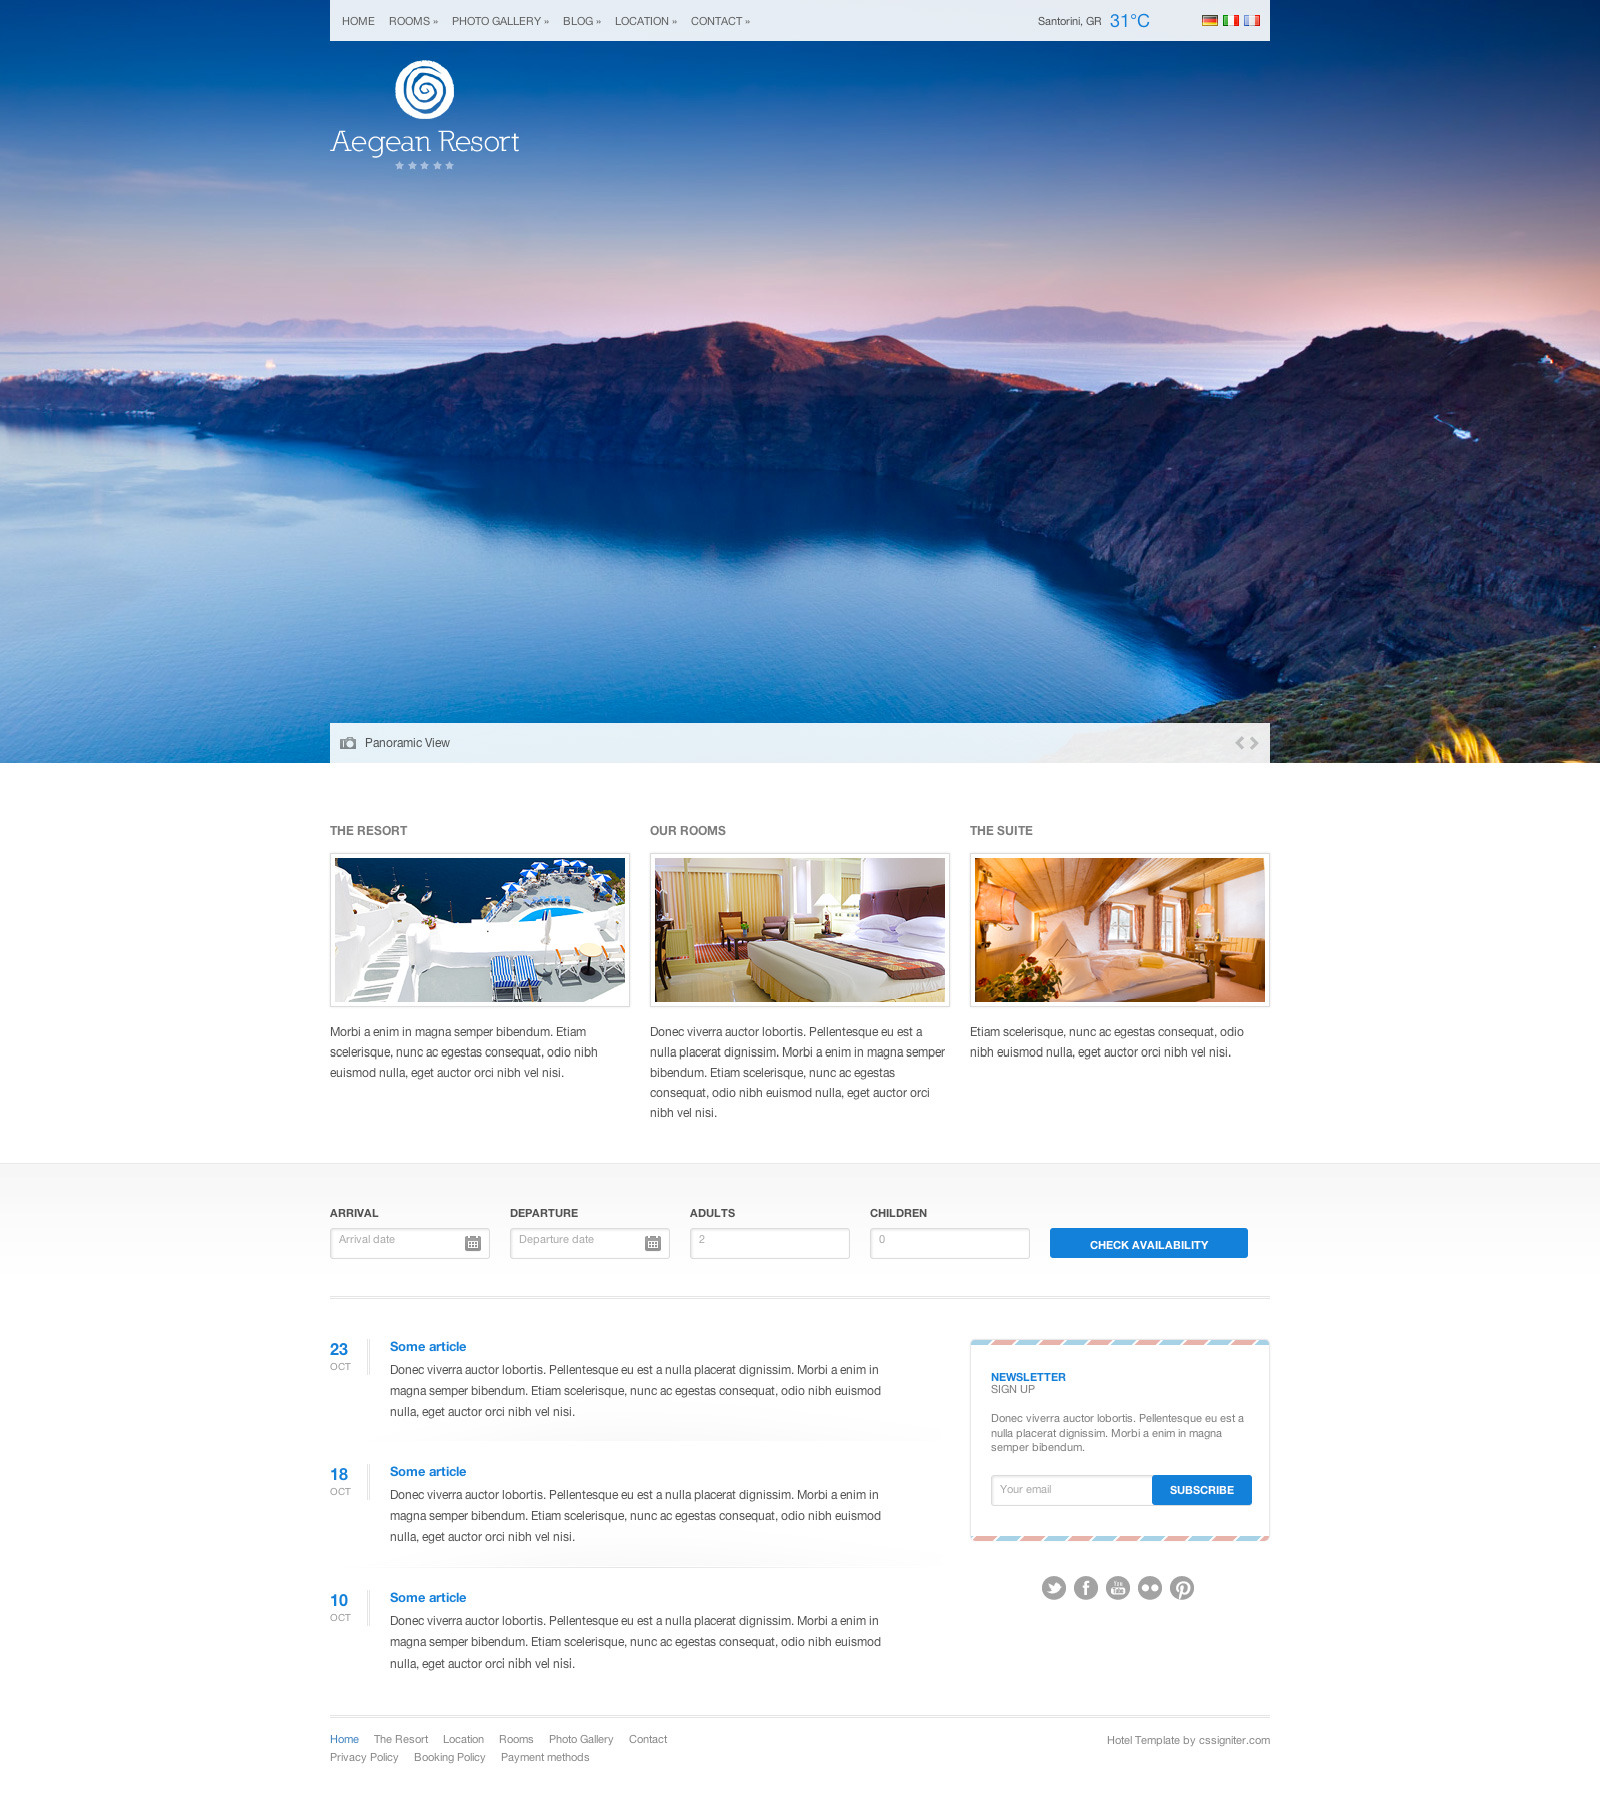 aegean resort theme for wordpress development